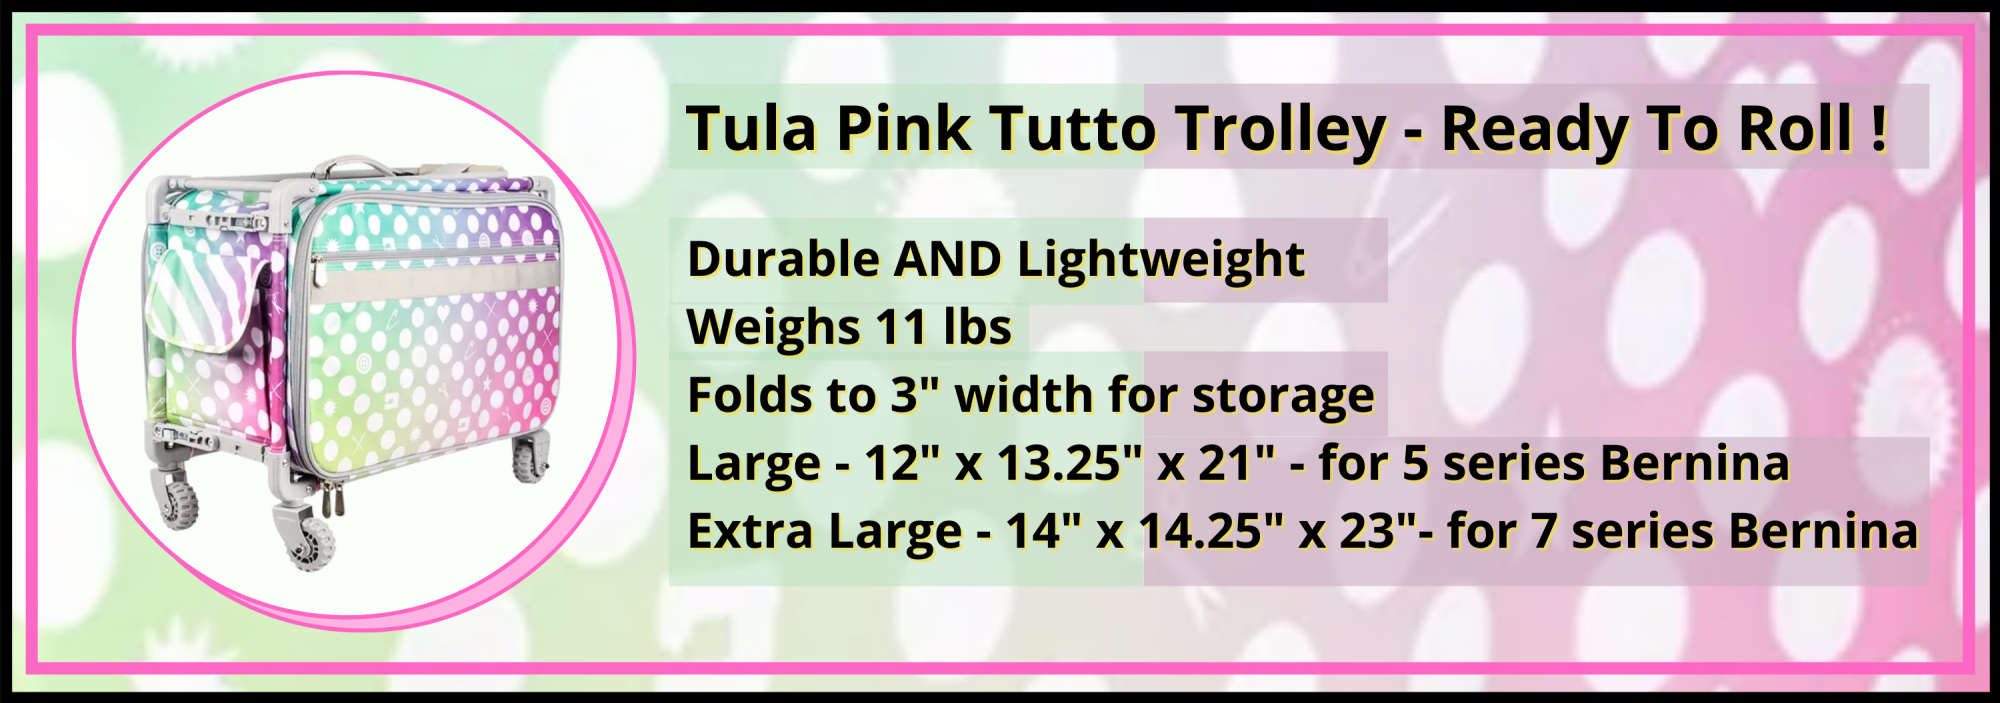 bees quilt shop st augustine tula pink tutto trolley